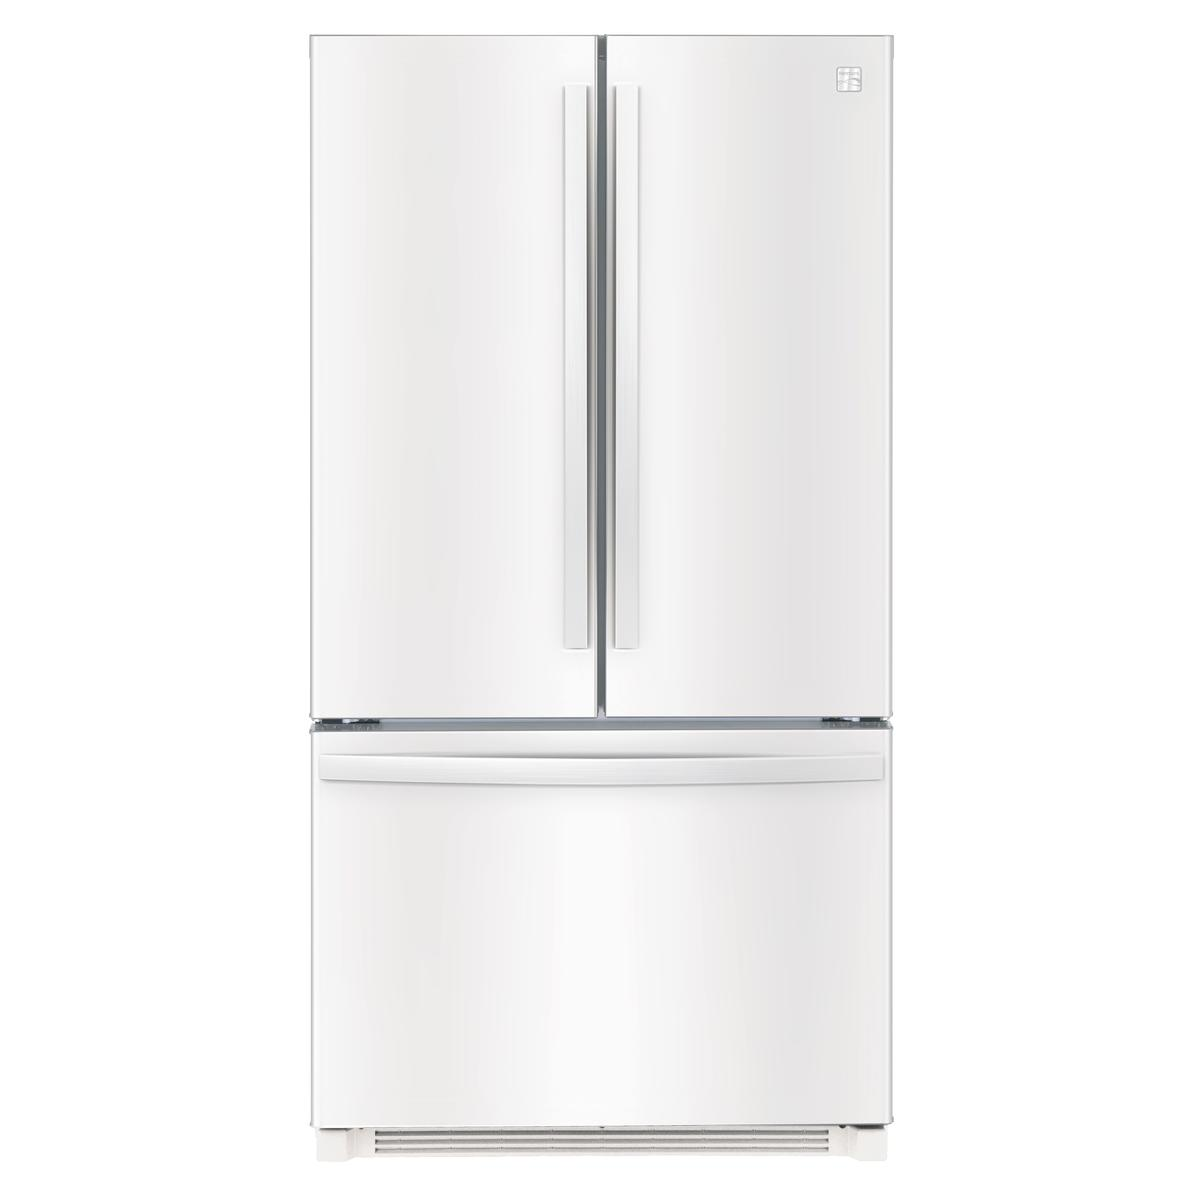 Kenmore 73022 26.1 cu. ft. French Door Refrigerator with Ice Maker – White